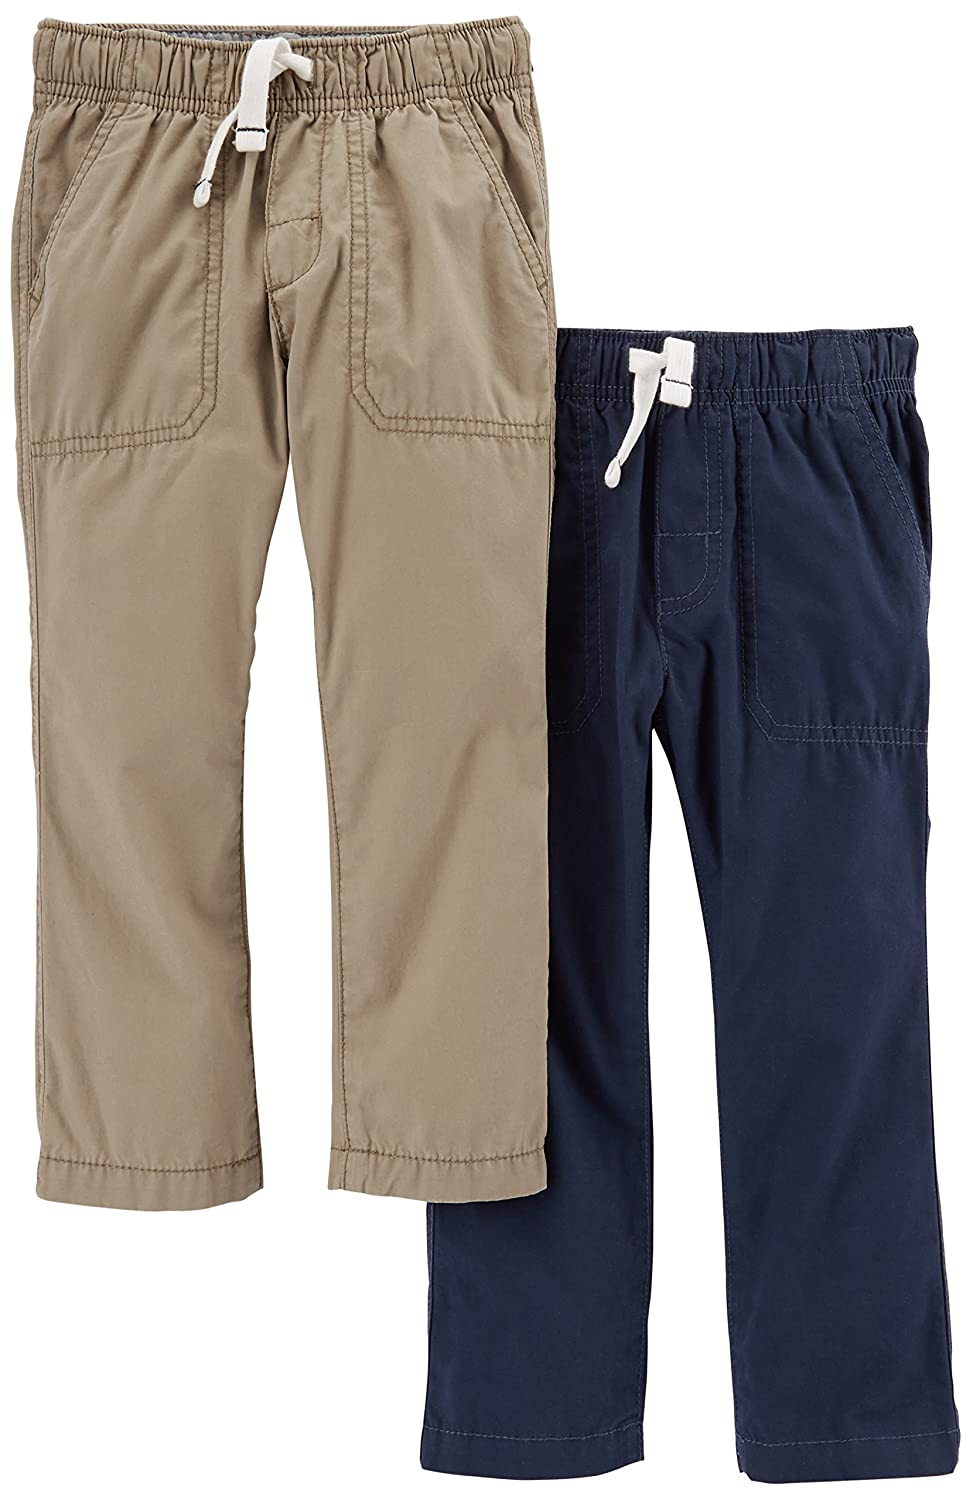 Carters Baby Boys 2-Pack Woven Pant